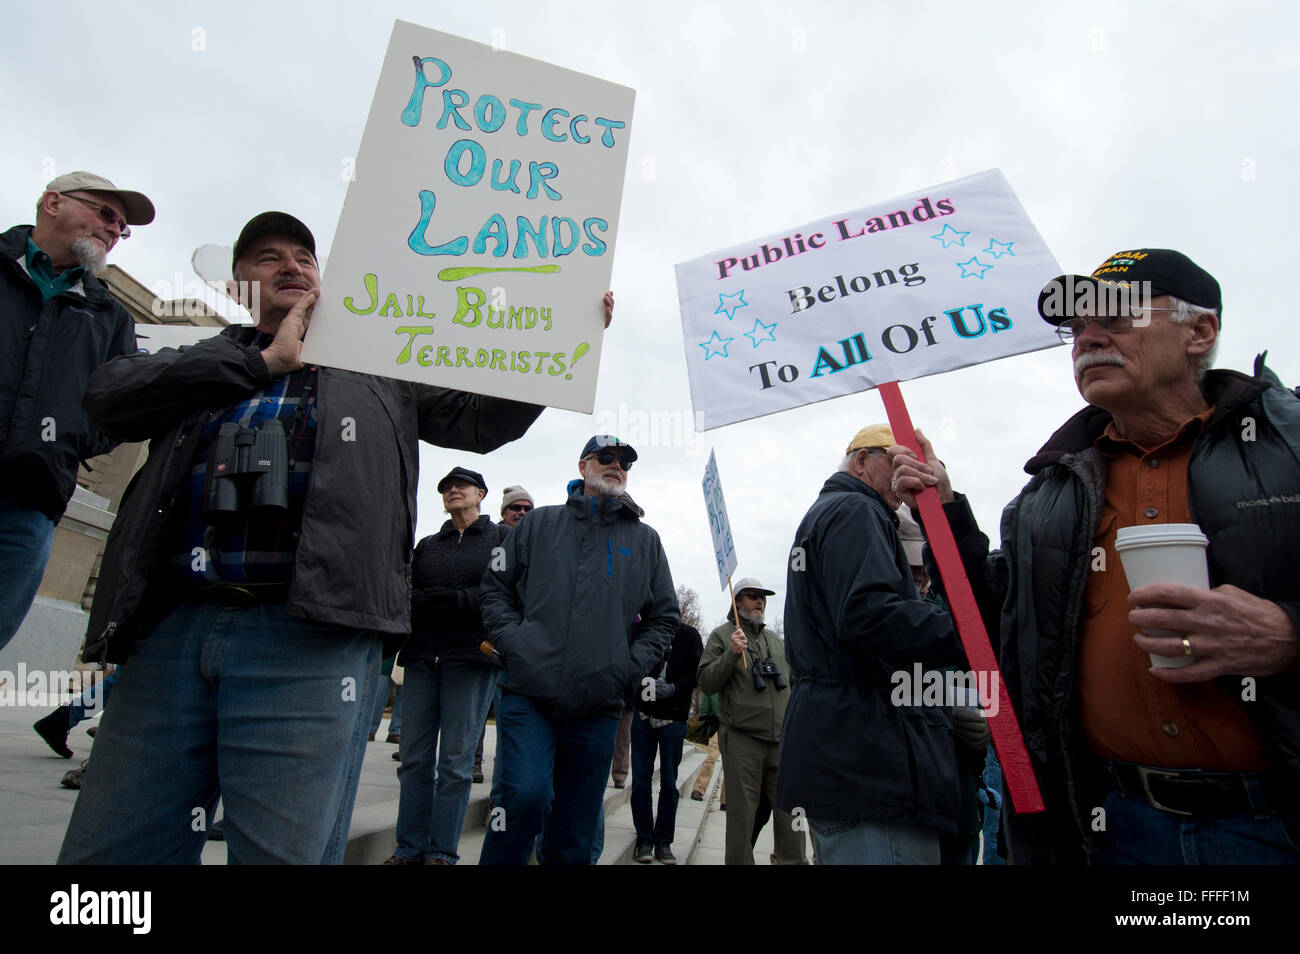 Pro-public lands rally in Boise ID, January 2016 - Stock Image